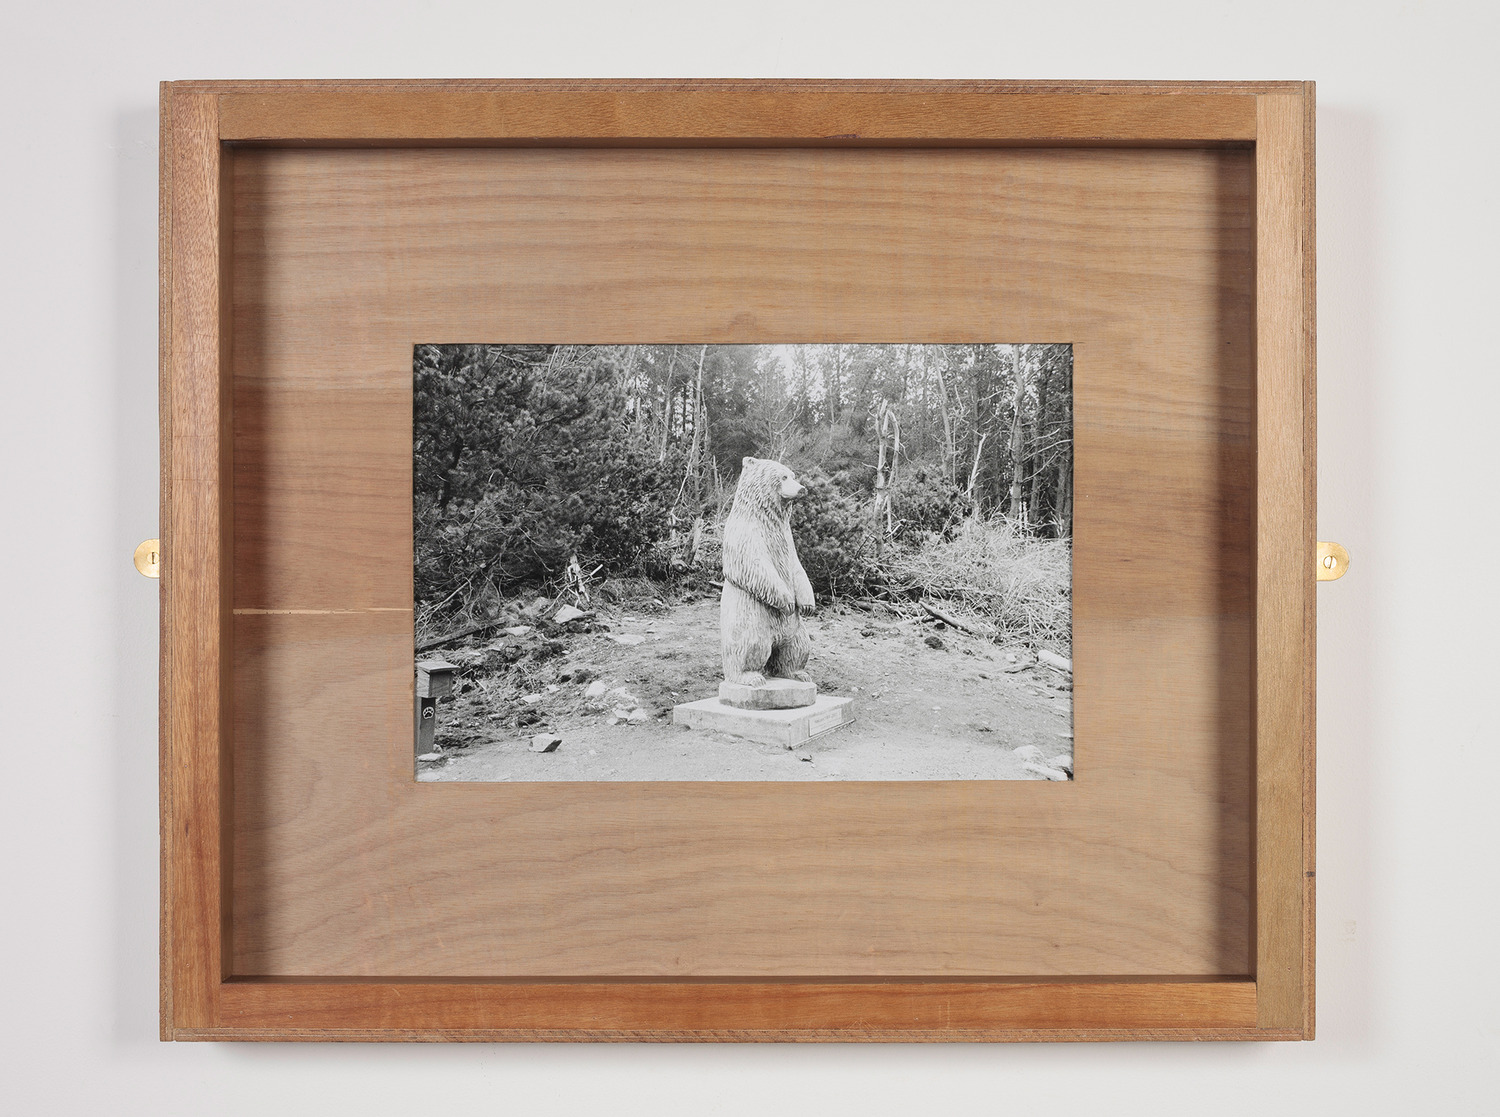 Untitled (Hercules), 2014, Plywood, glass, brass mirror plates, B&W photograph, 60.5 x 72.5 x 6.5 cm